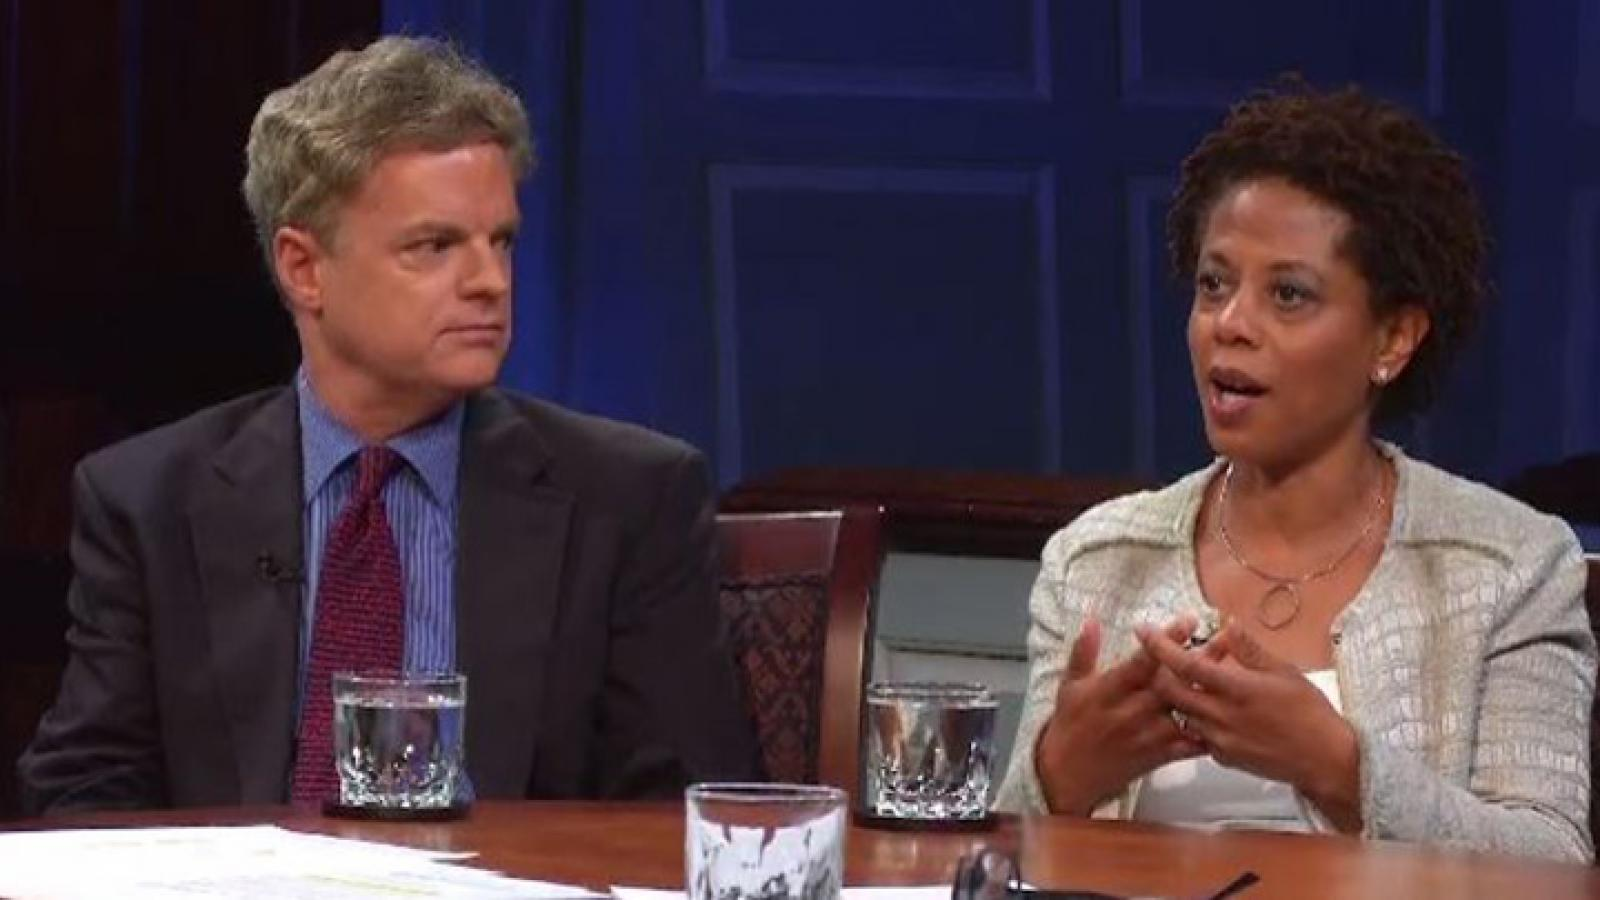 John Bridgeland and Melody Barnes